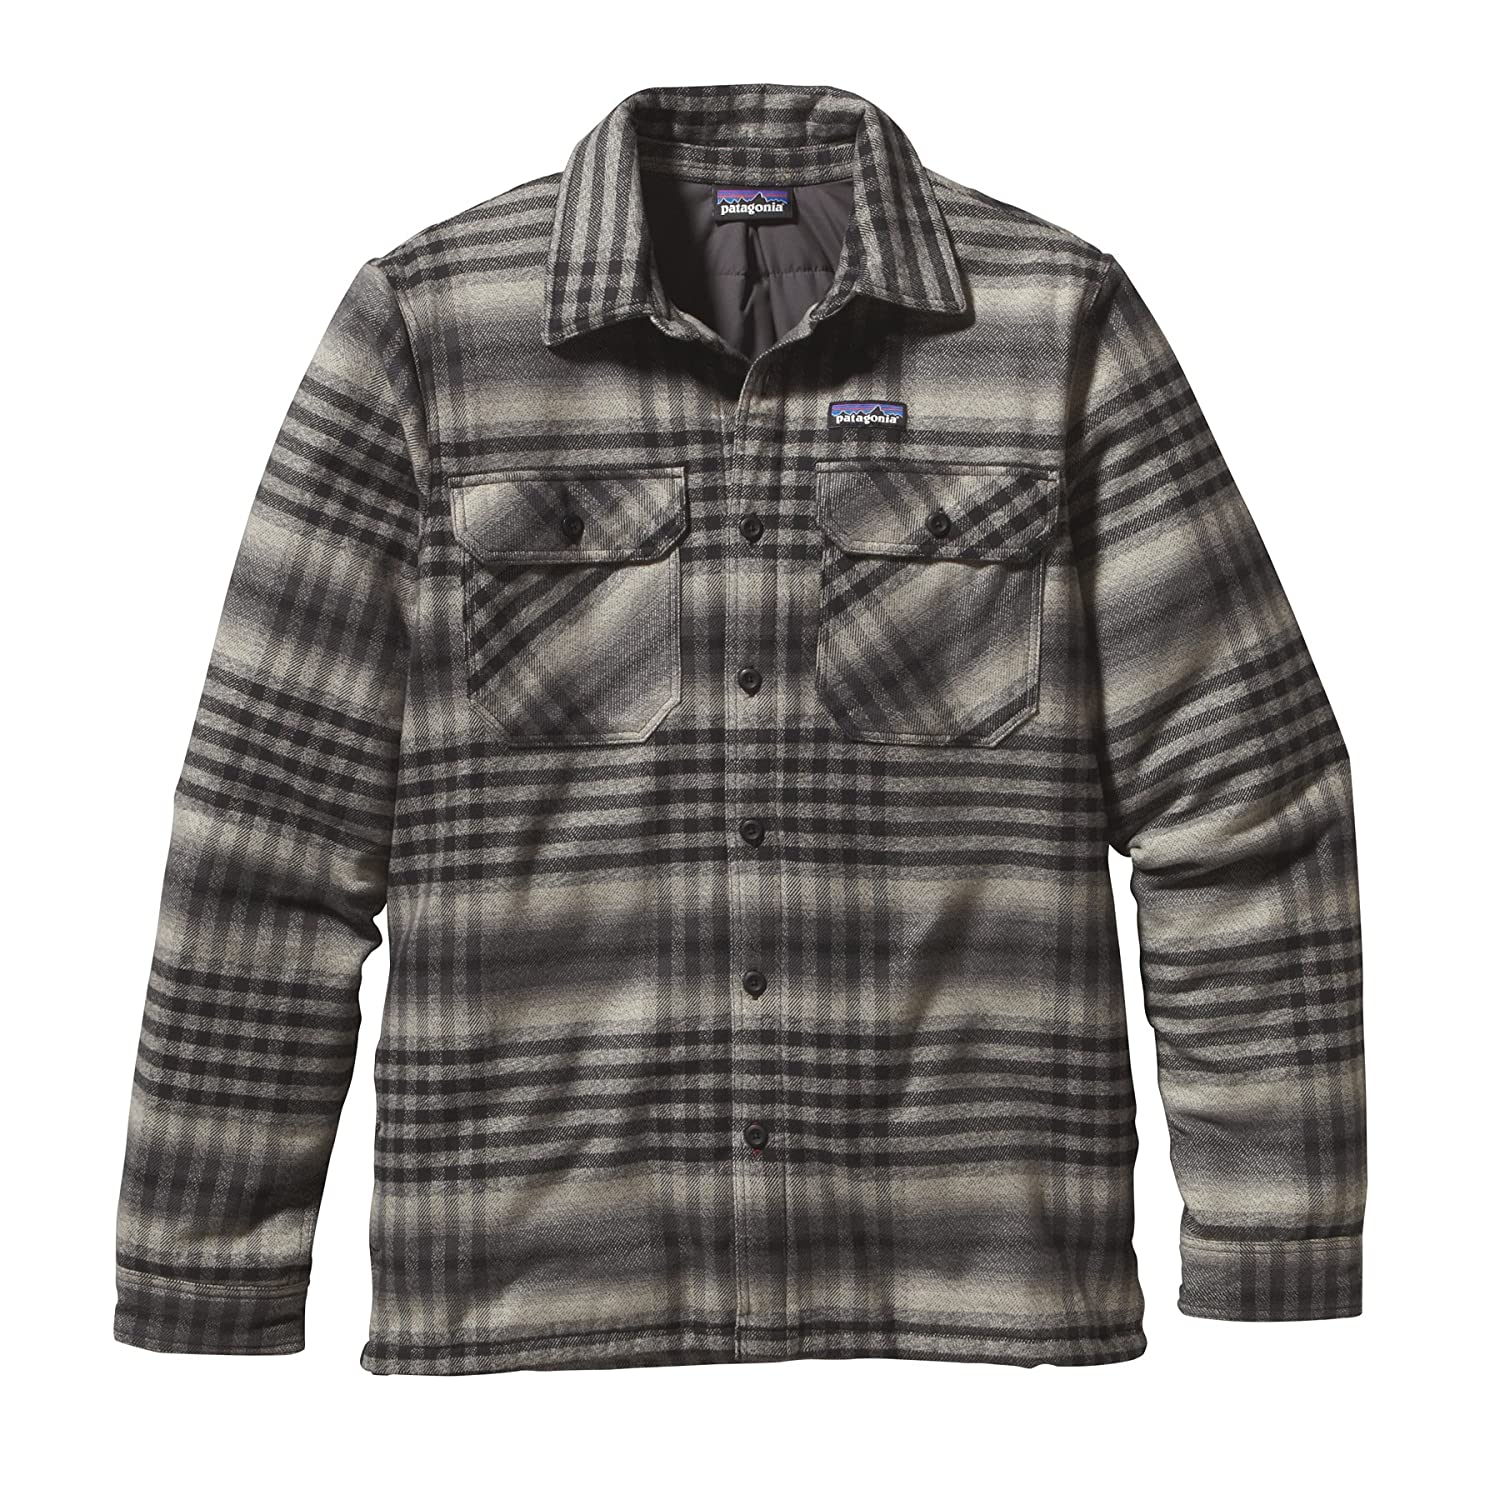 M's Insulated Fjord Flannel Jacket Smolder Blue günstig kaufen